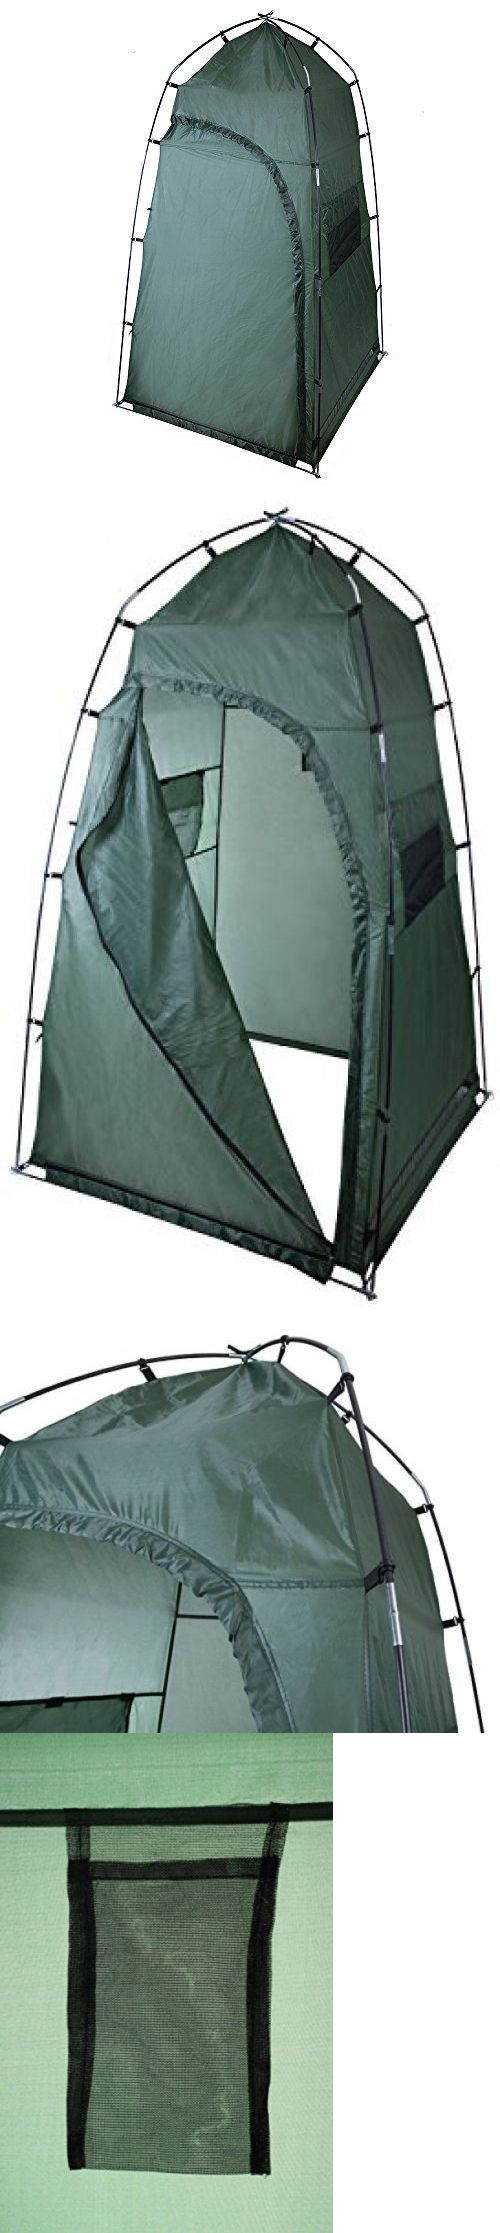 Portable Showers and Accessories 181396: Portable Shower Privacy Changing Tent Camping Shelter Outdoor Room Toilet Hiking -> BUY IT NOW ONLY: $64.43 on eBay!